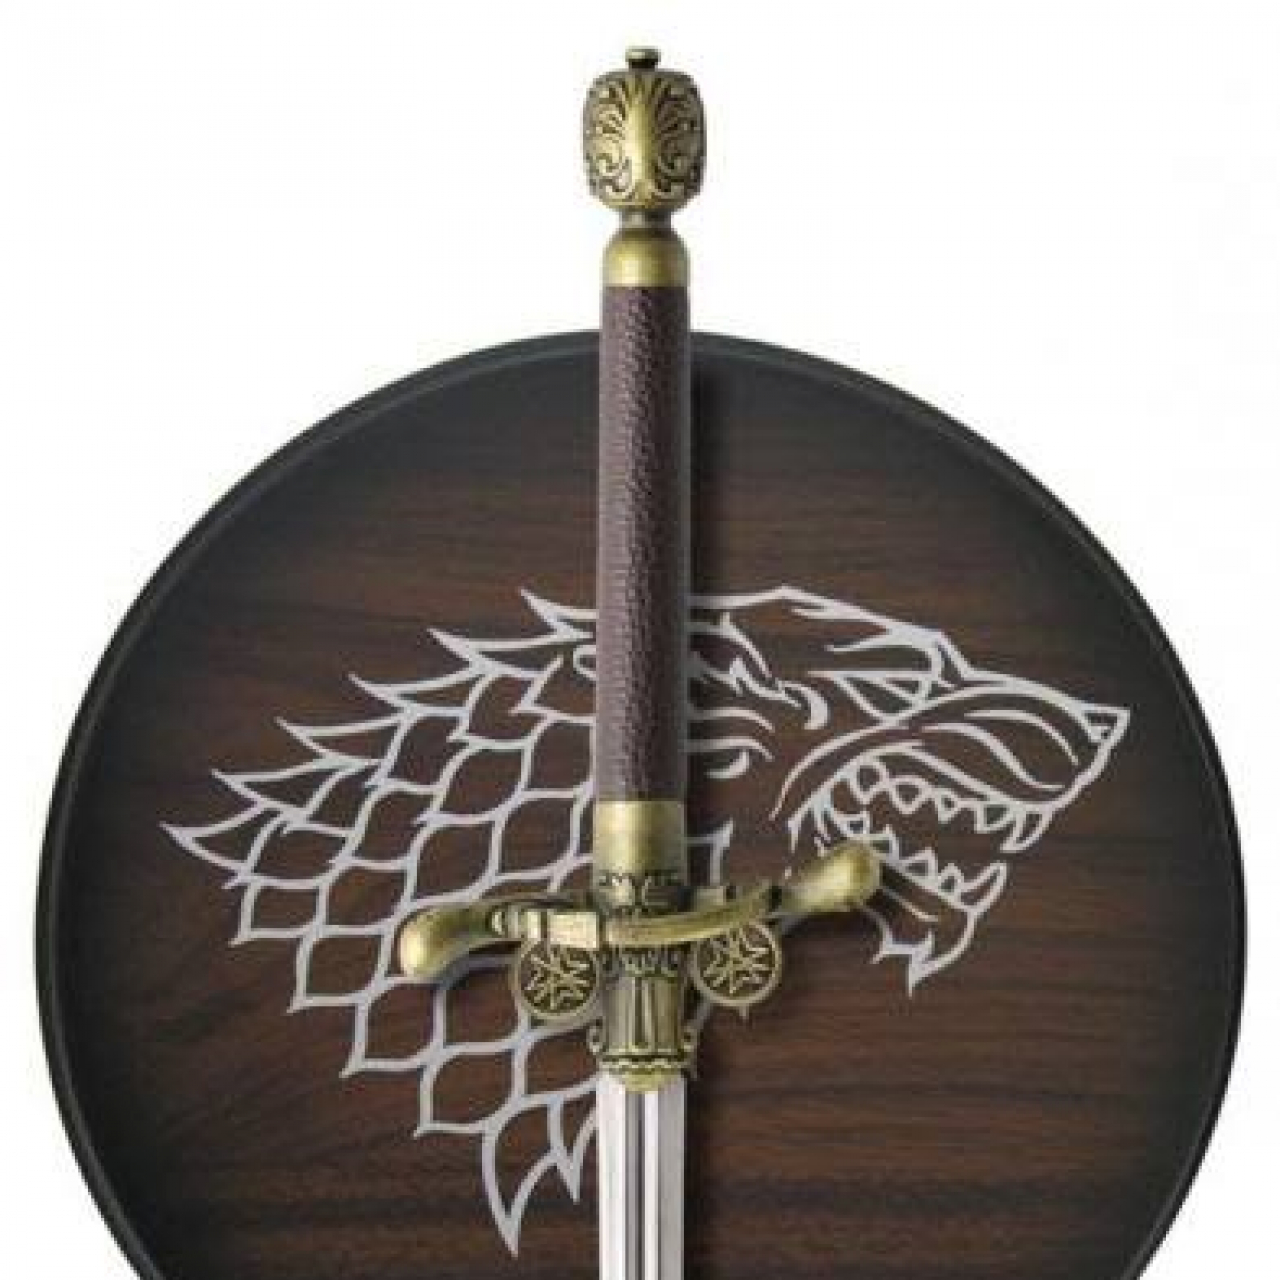 Game of Thrones Replica 1/1 Needle Sword of Arya Stark 77 cm